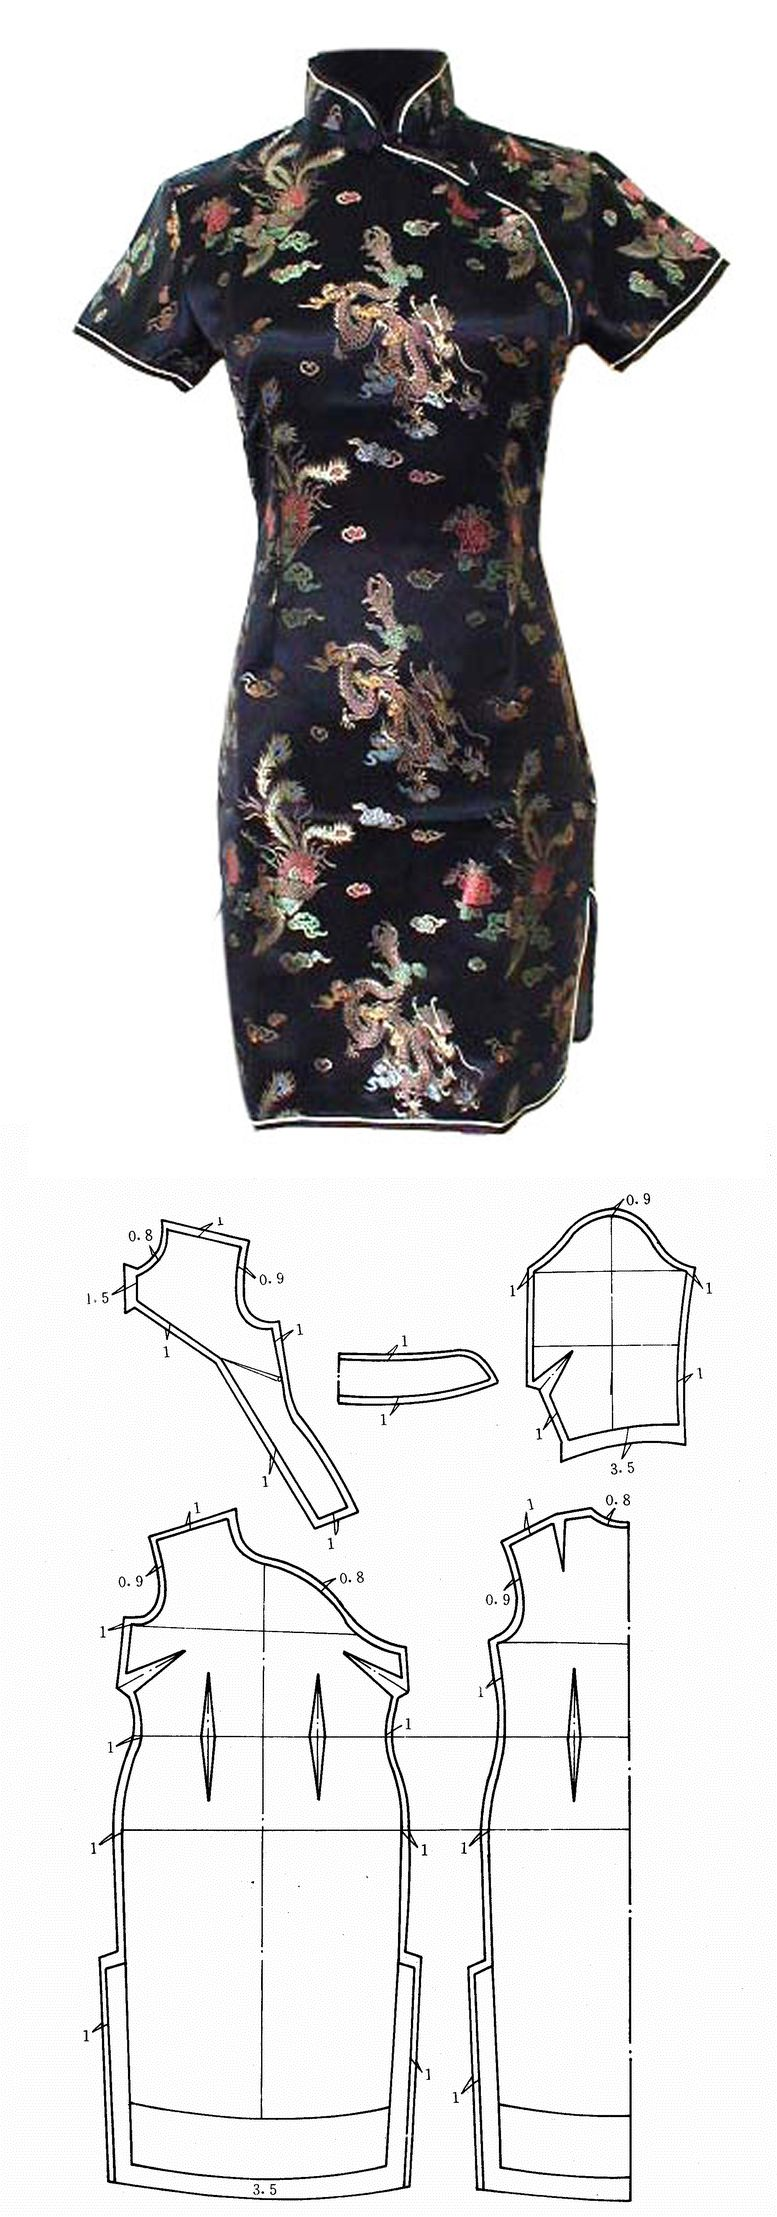 qipao - Tradicional chinese dress pattern | 服饰收藏 | Pinterest ...